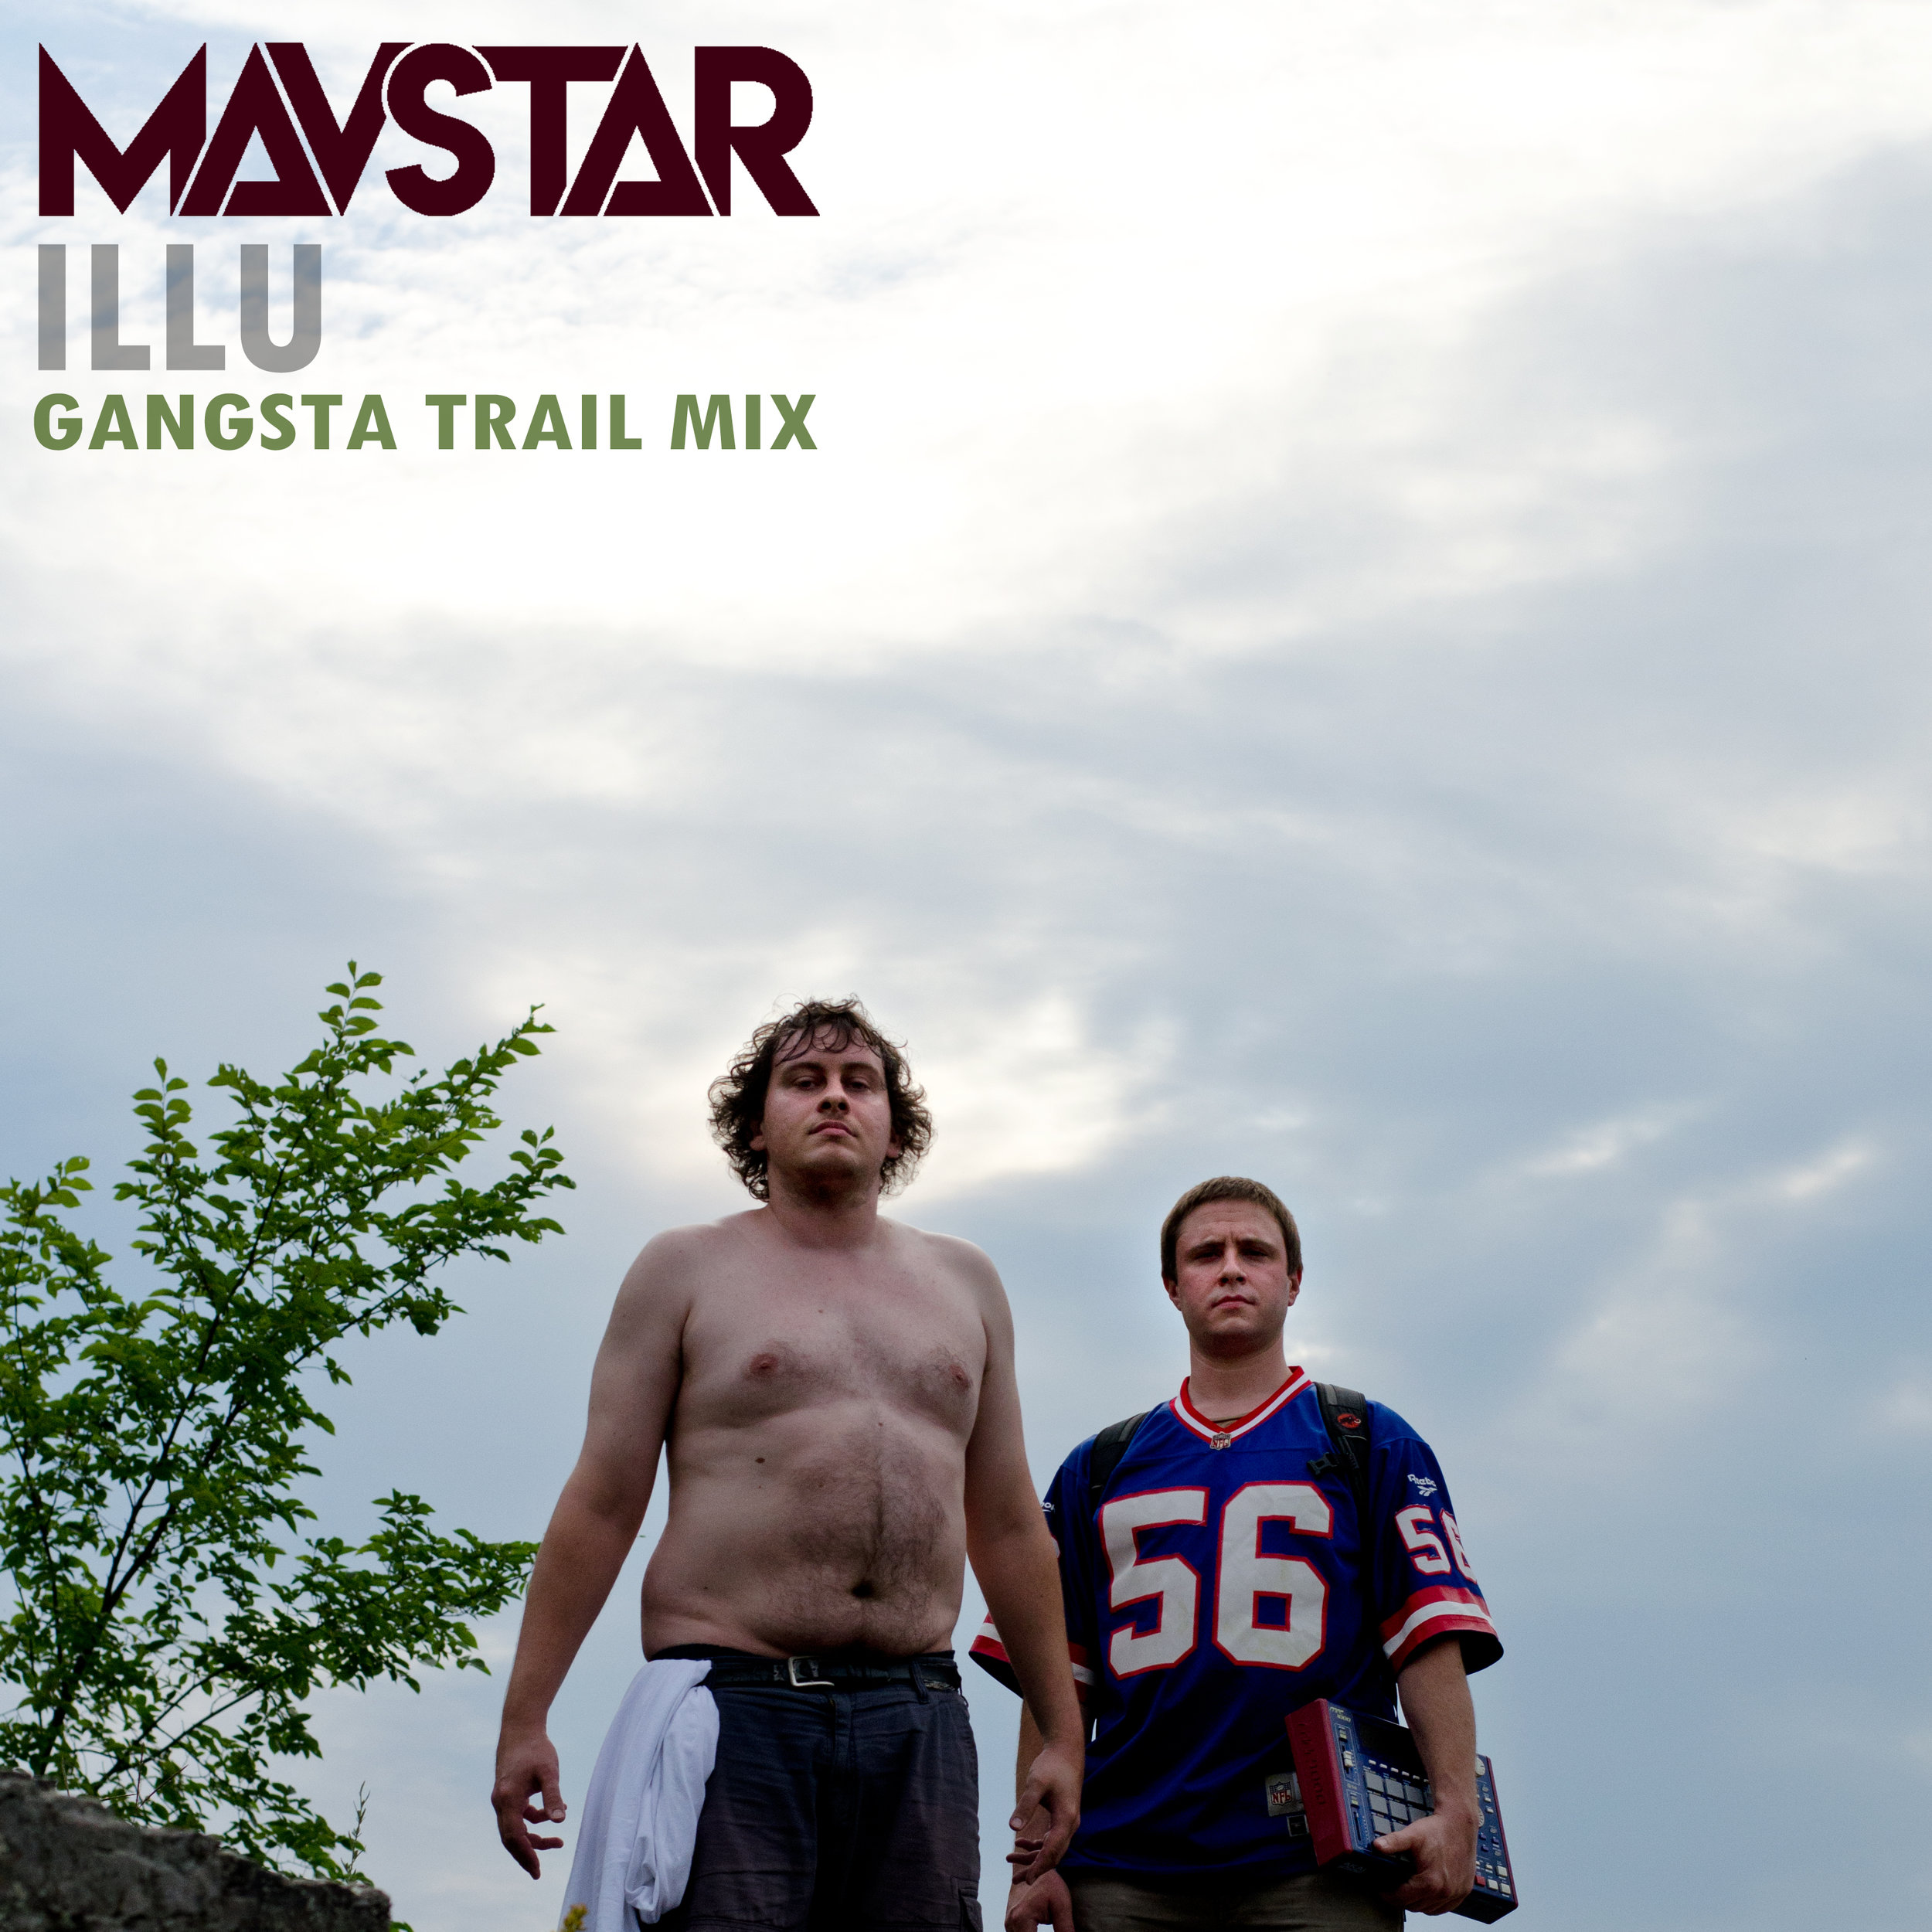 Gangsta Trail Mix